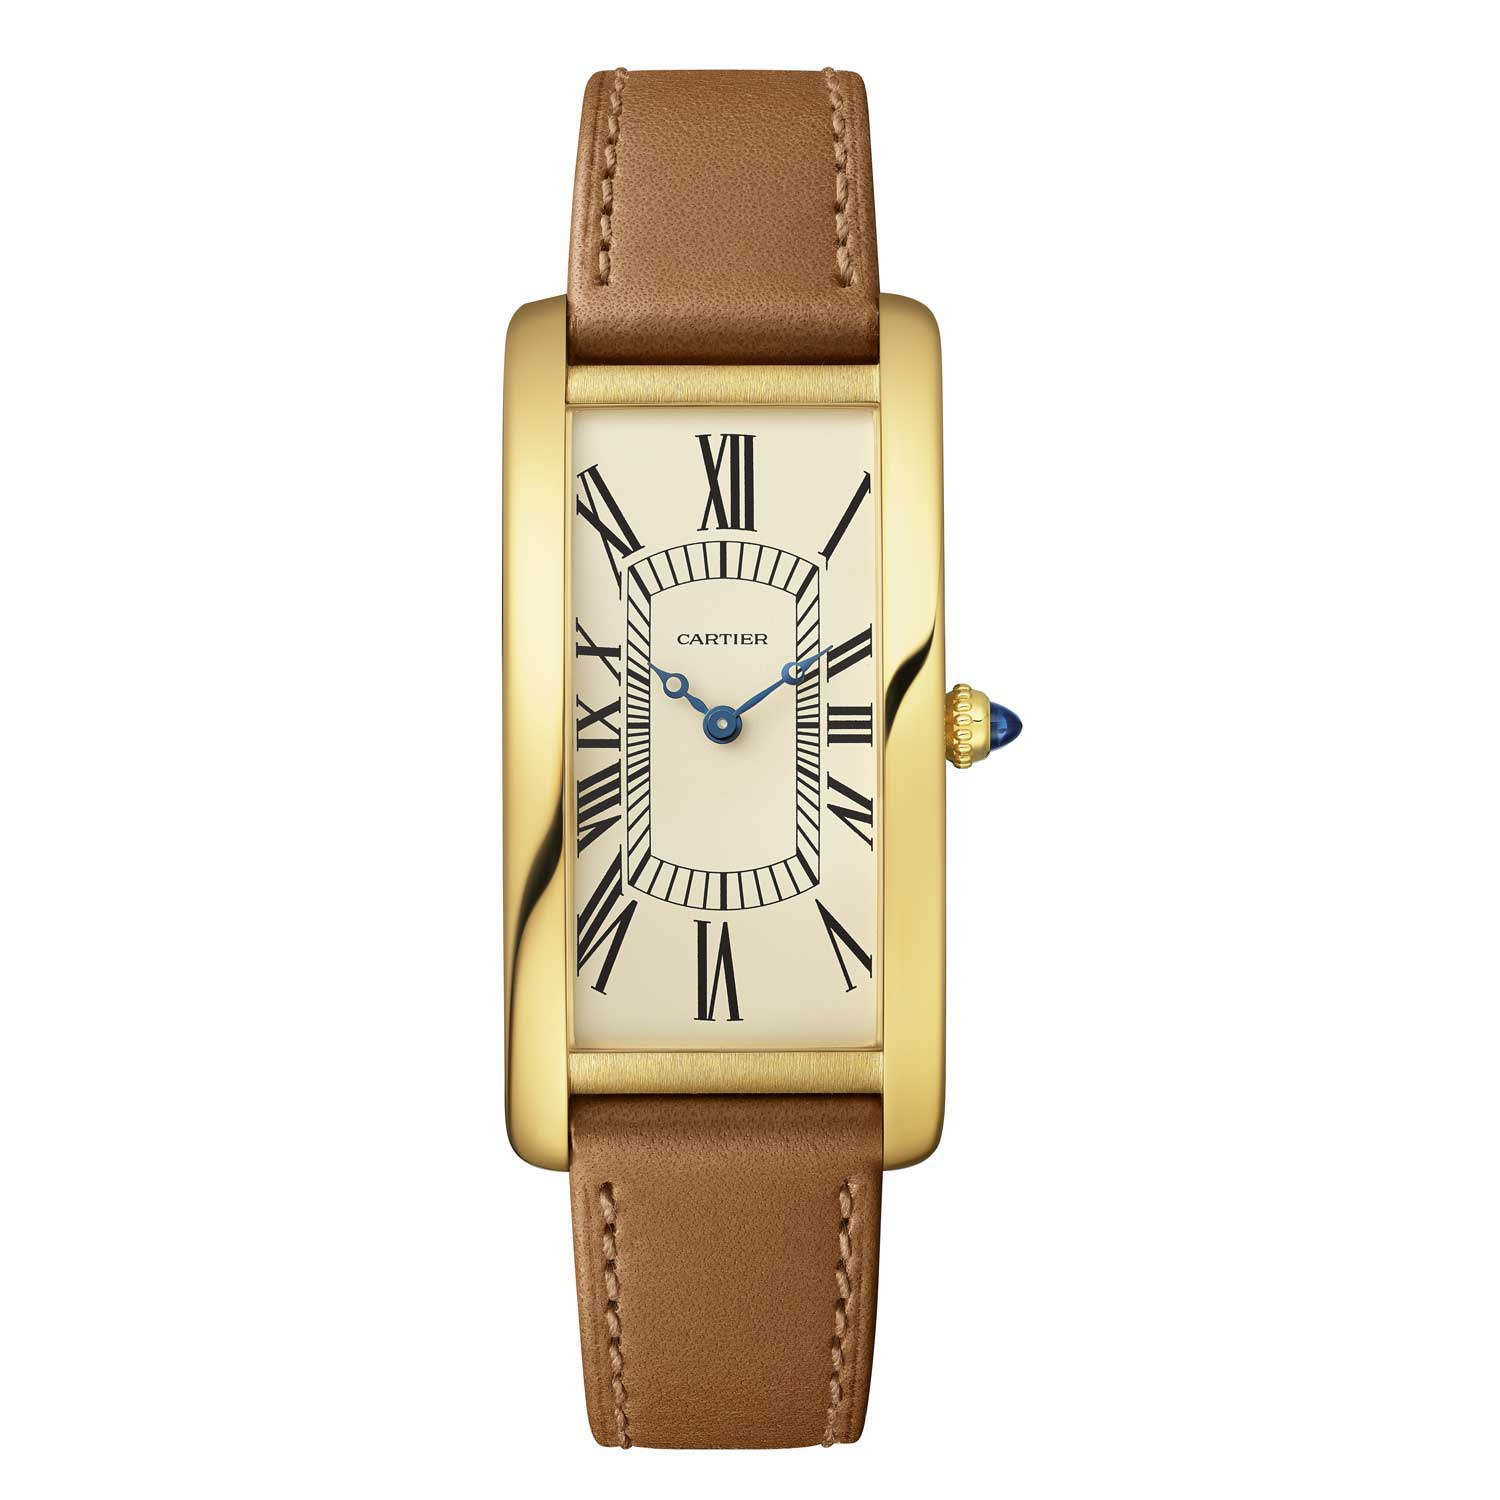 The 100th Anniversary Cartier Tank Cintrée Limited Edition